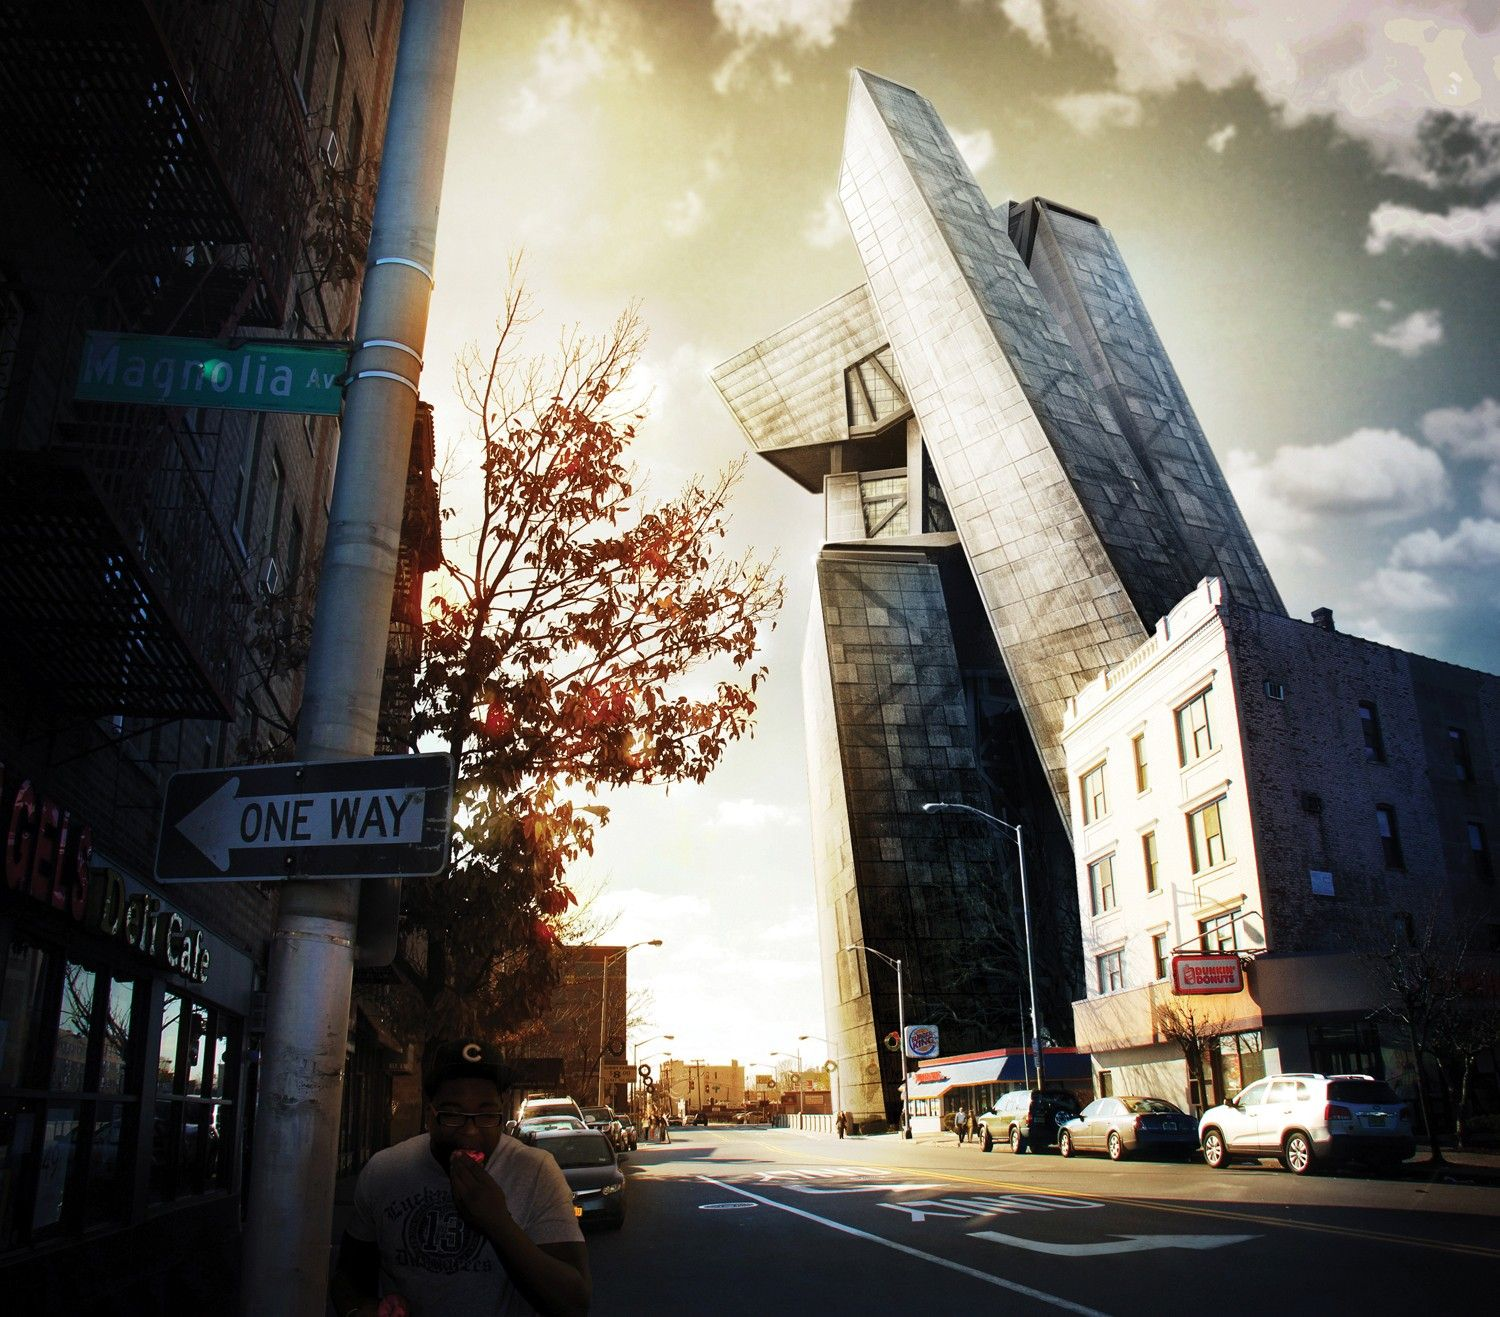 Architecture Photography Editing photoshop tutorial: composite a 3d building into a photo read more